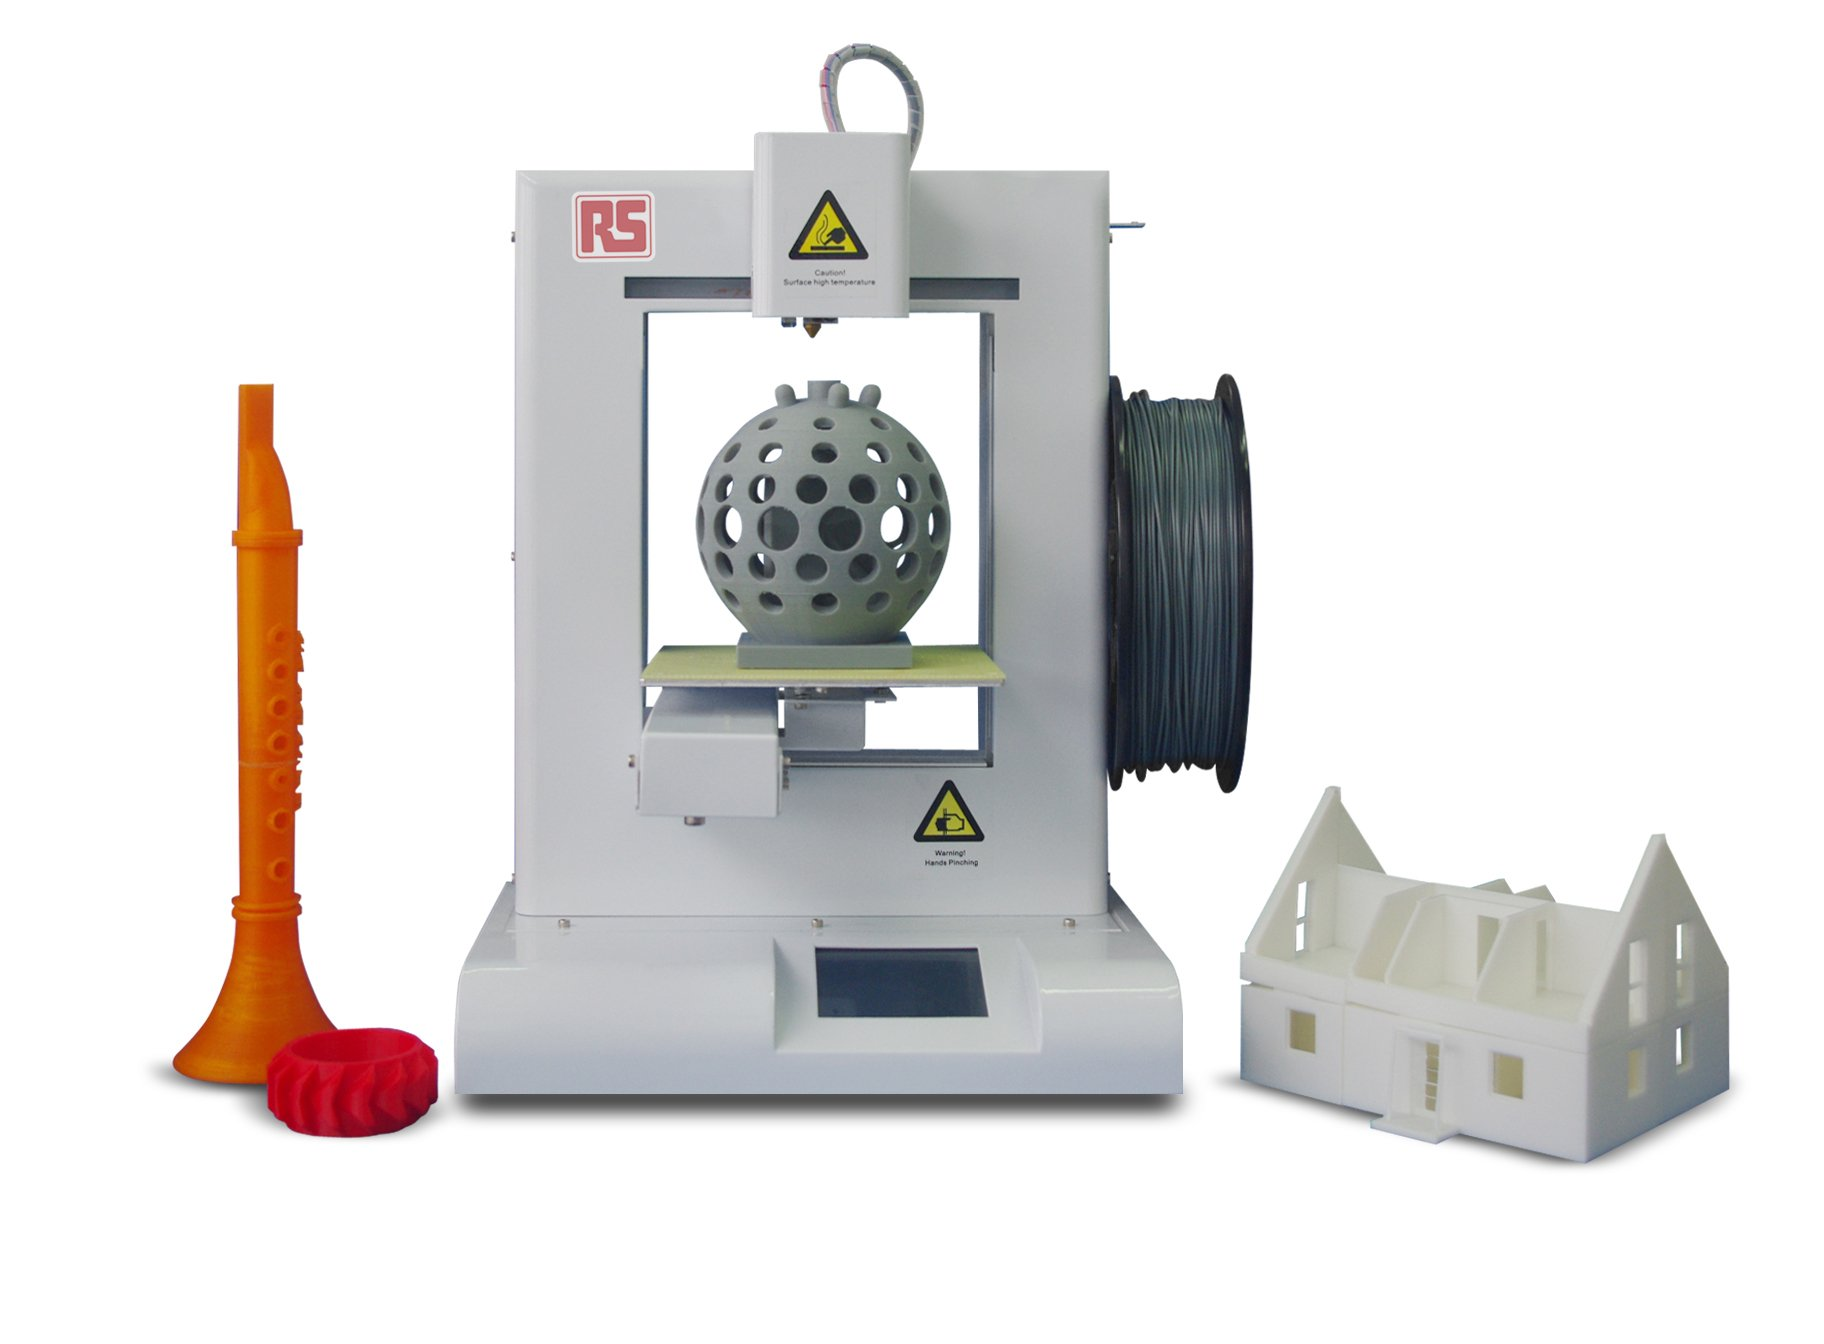 Professional-quality 3D printer enables rapid prototyping ...